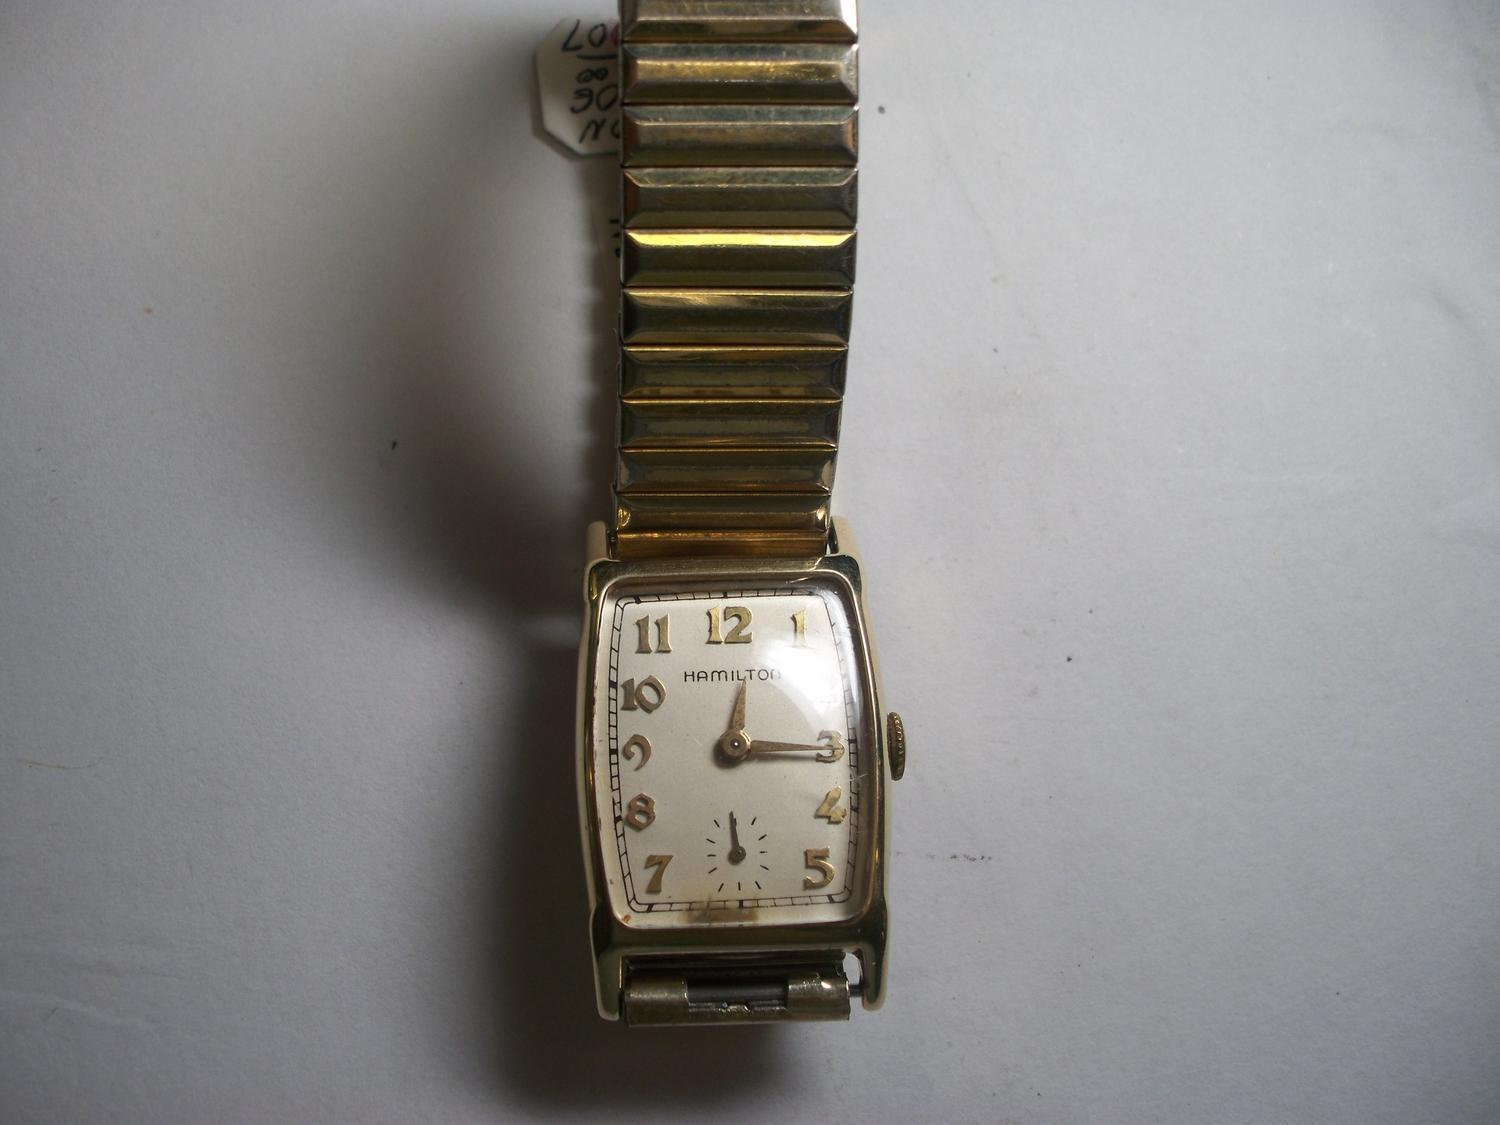 the fill waltham thevintagewristwatch watches wrist company antique antiques watch photos gold vintage filled browse